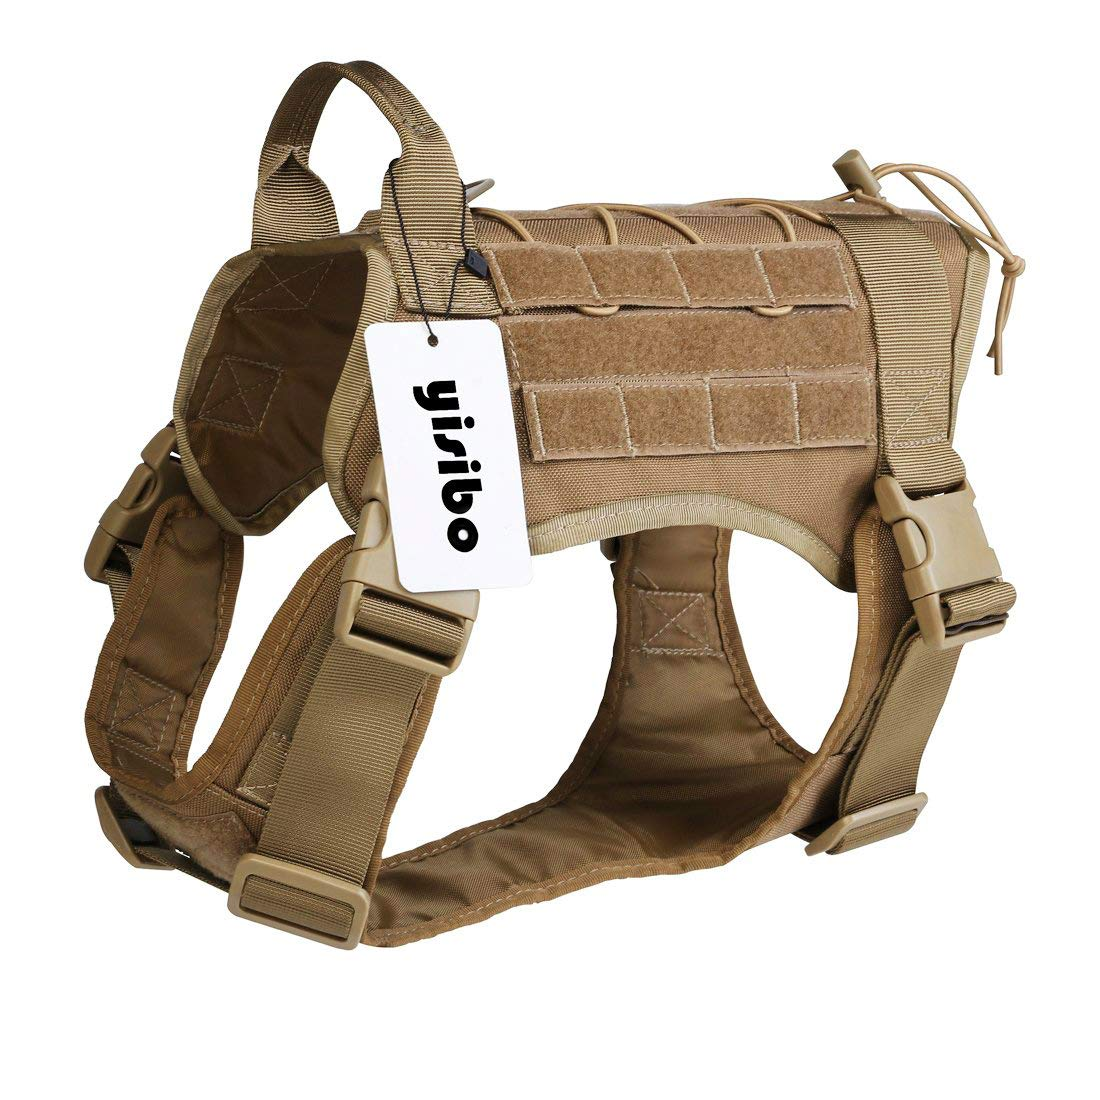 yisibo Comfortable Molle Tactical Dog Harness Military K9 Working Water-Resistant Hiking Dog Vest with Handle,Extra-Large (31.5''-39.5'' Chest Girth),Coyote Brown